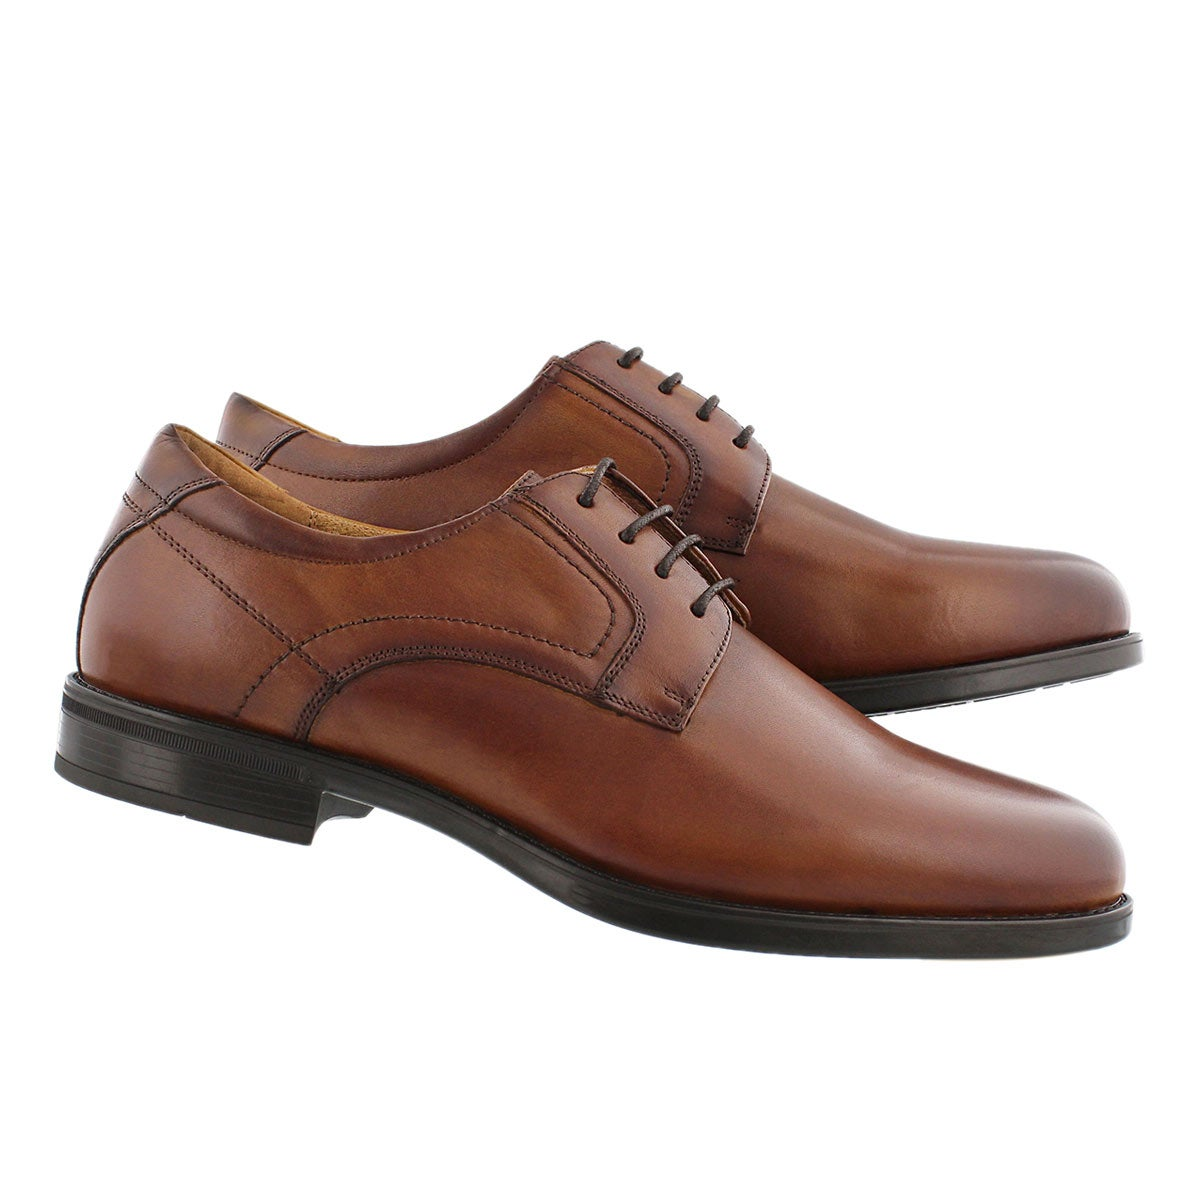 Mns Midtown PlnToe cgn dress oxford-wide